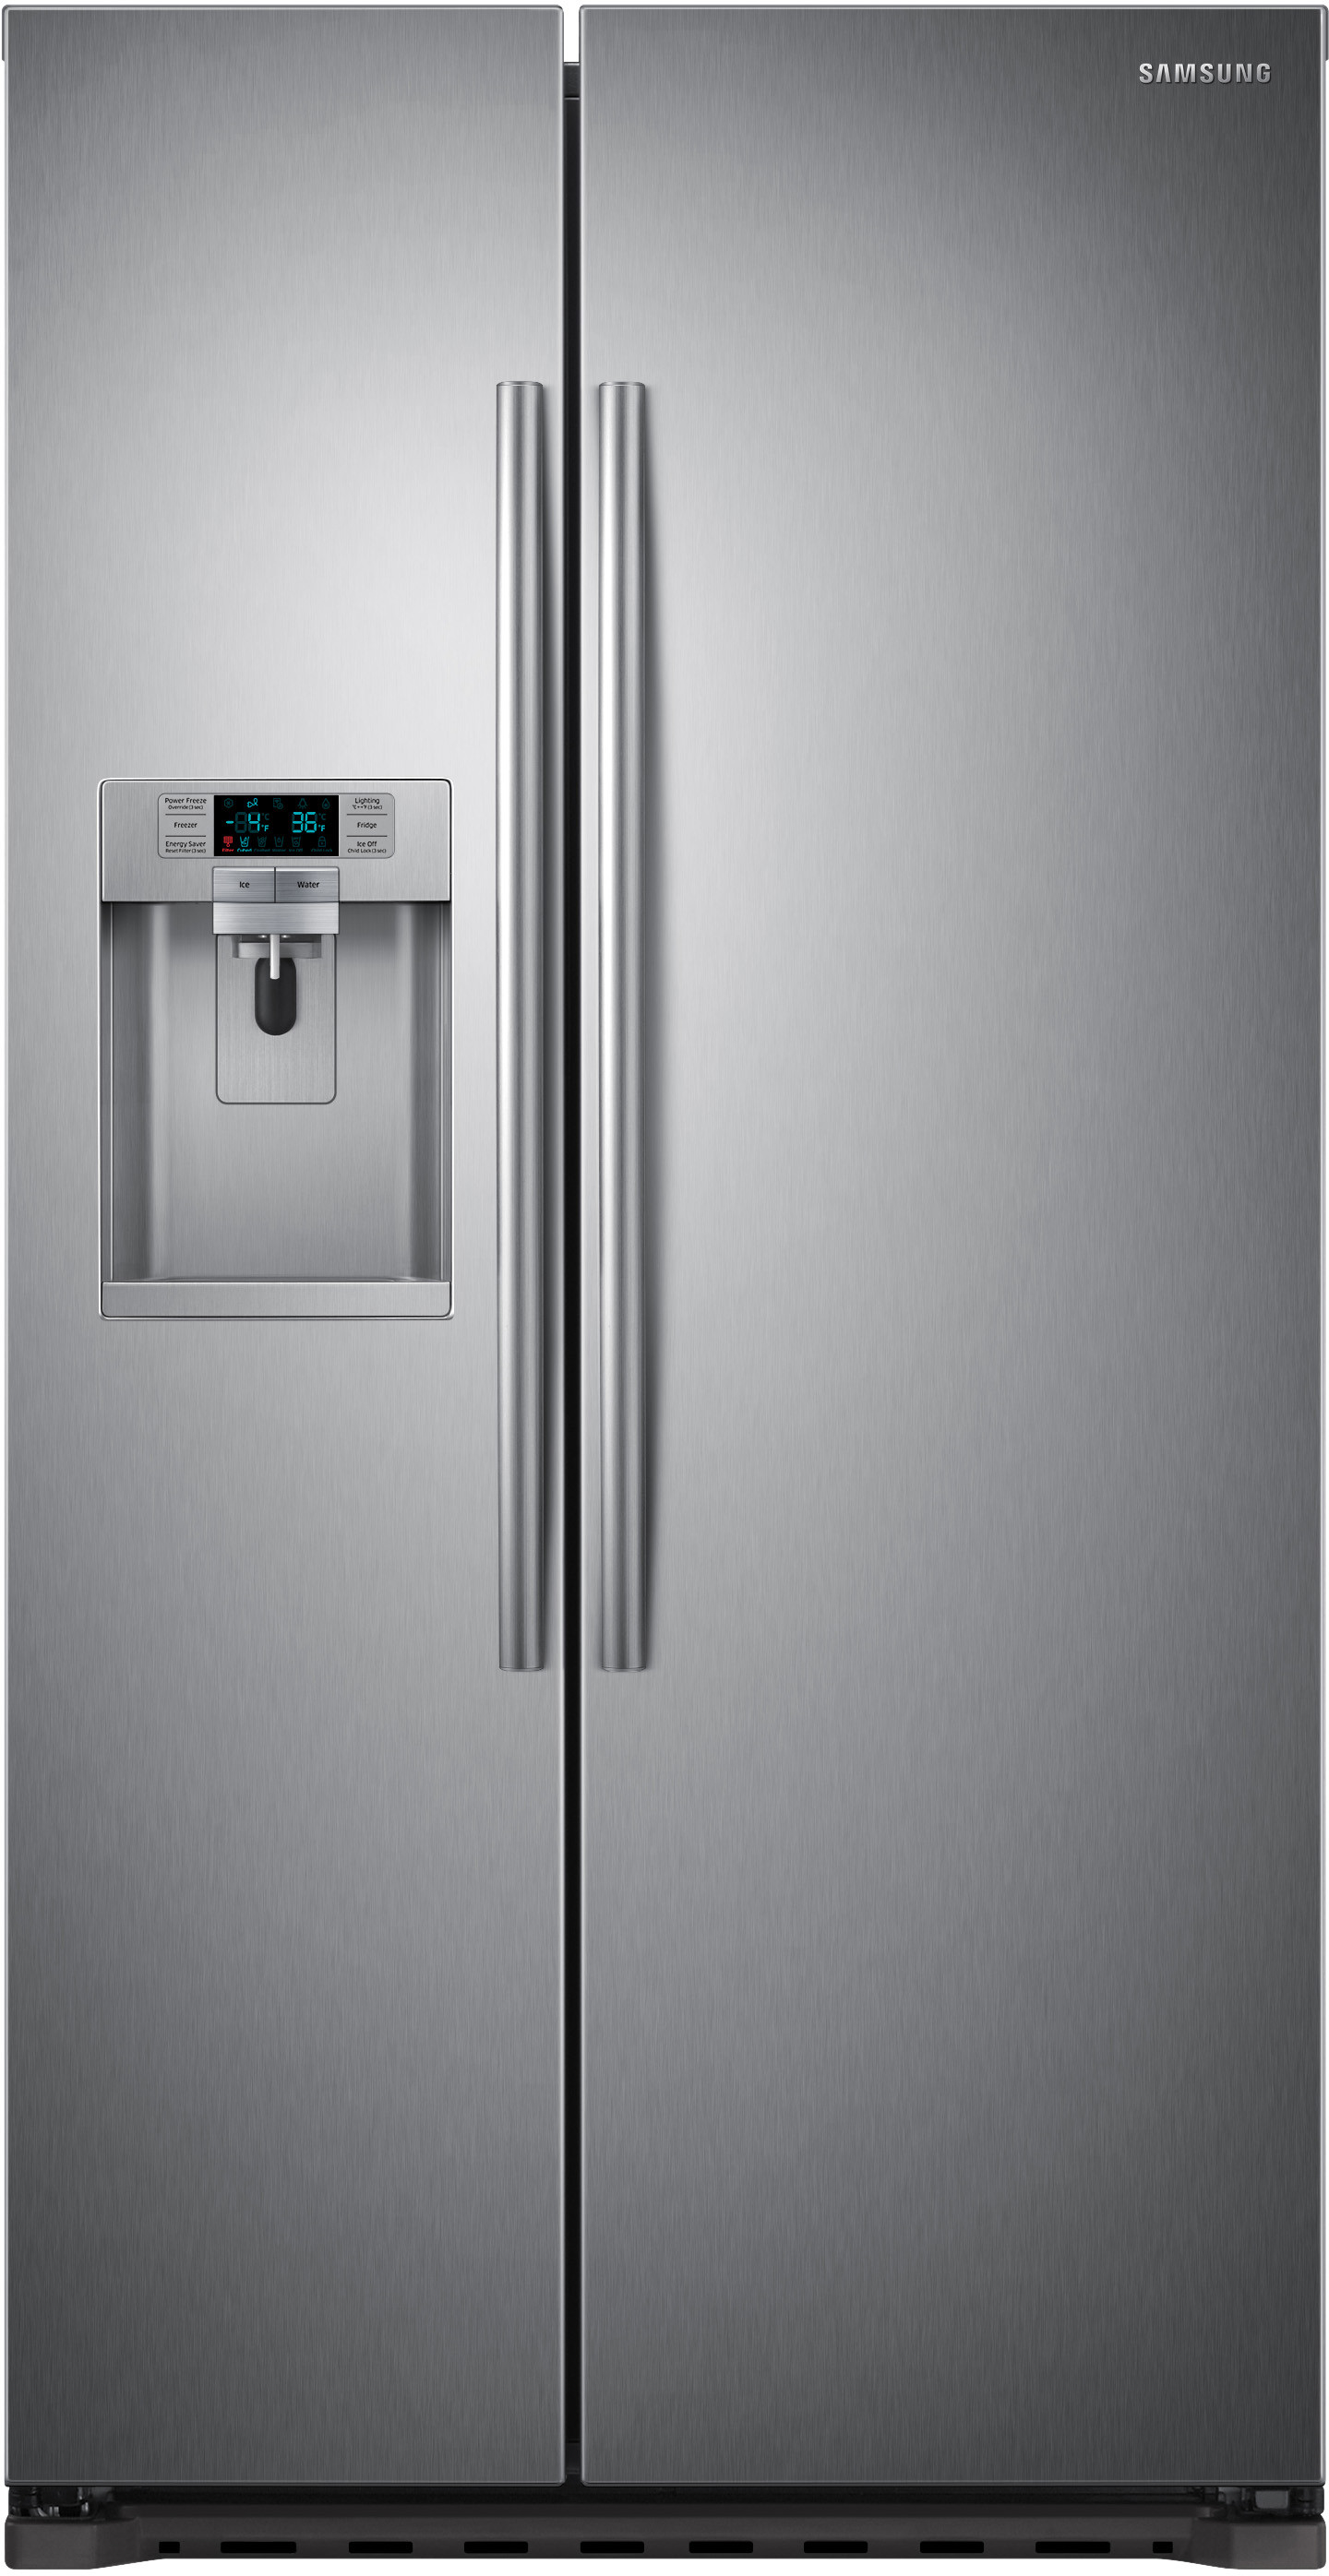 Samsung Rs22hdhpnsr 36 Inch Counter Depth Side By Side Refrigerator With 22 3 Cu Ft Capacity 3 Adjustable Spillproof Glass Shelves Twin Cooling Plus Led Li Counter Depth Refrigerator Counter Depth Side By Side Refrigerator